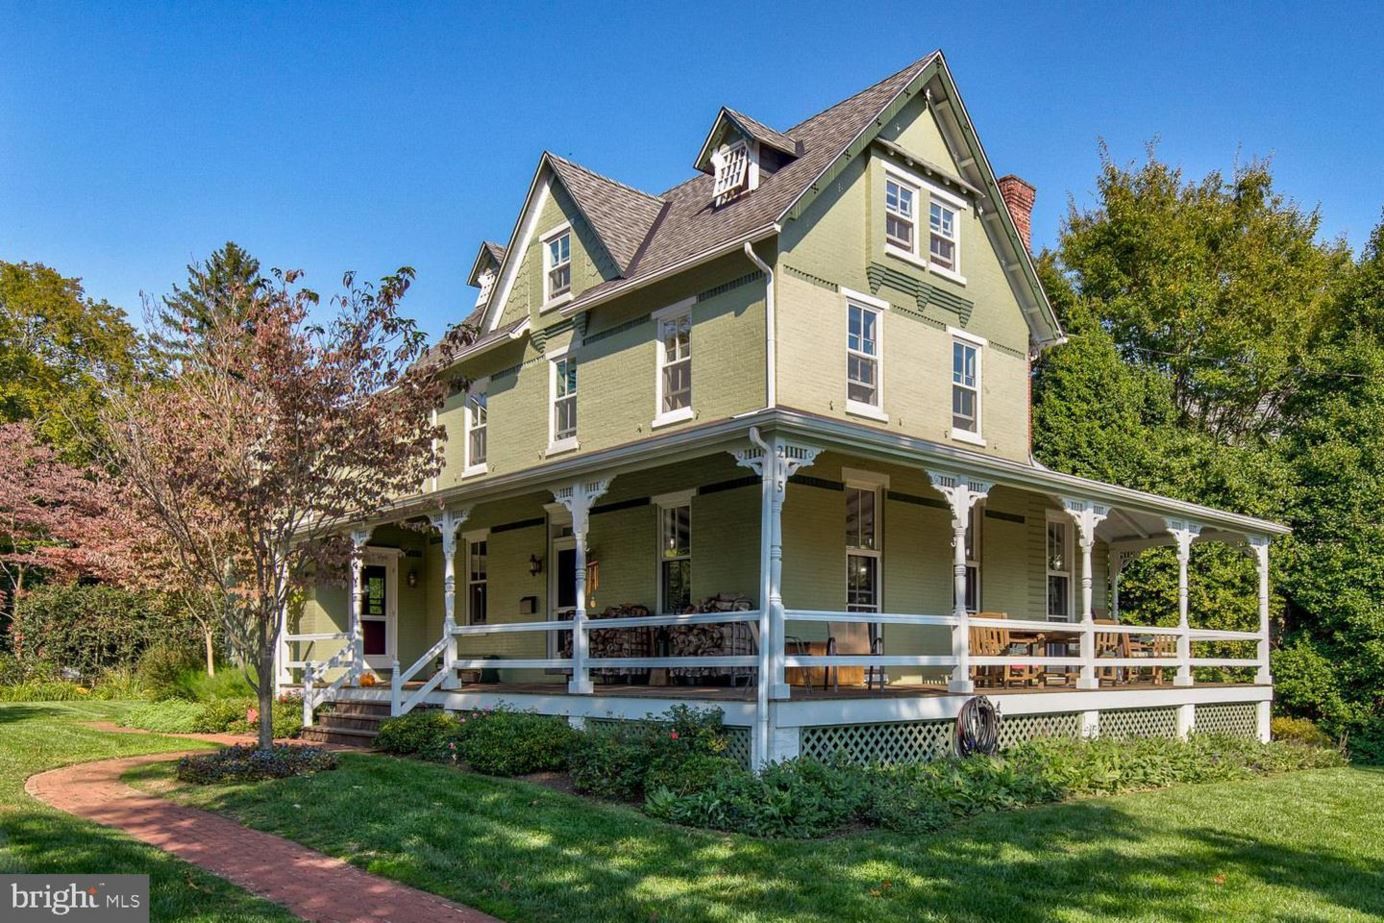 215 COLLEGE AVE, SWARTHMORE, PA 19081